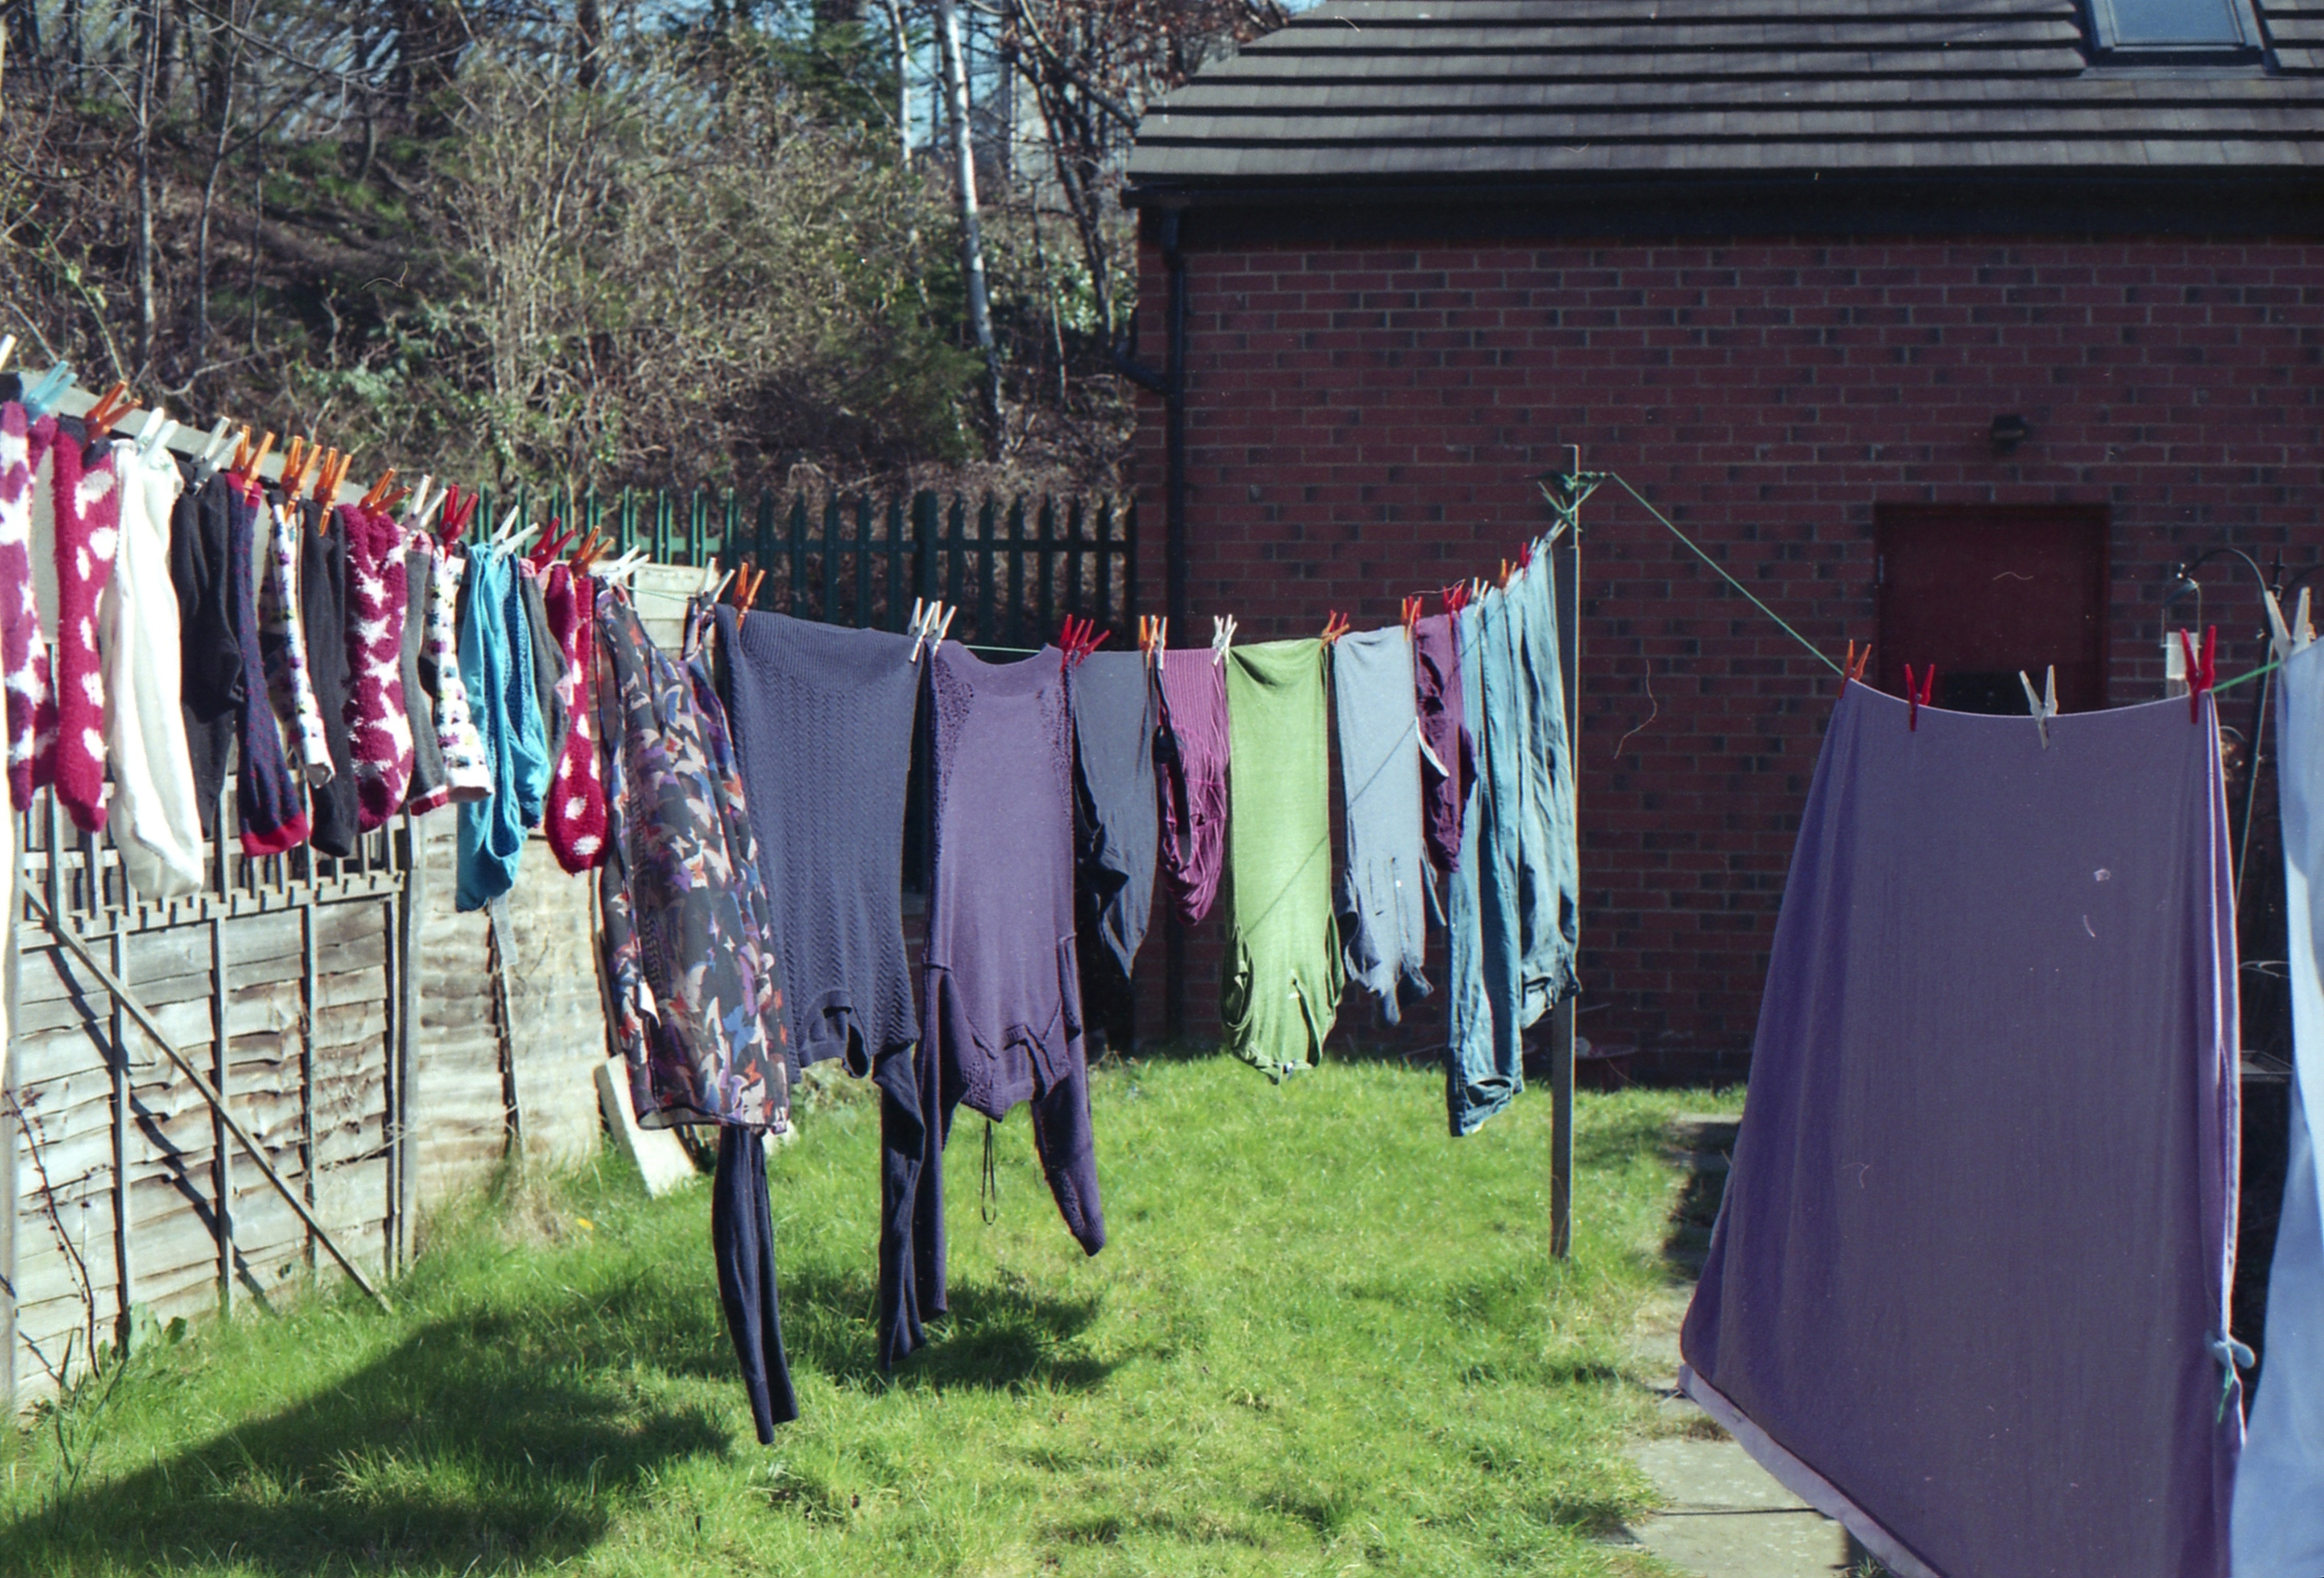 80/366 - An easy one! Our first hanging of clothes outside this year which always makes me super happy.